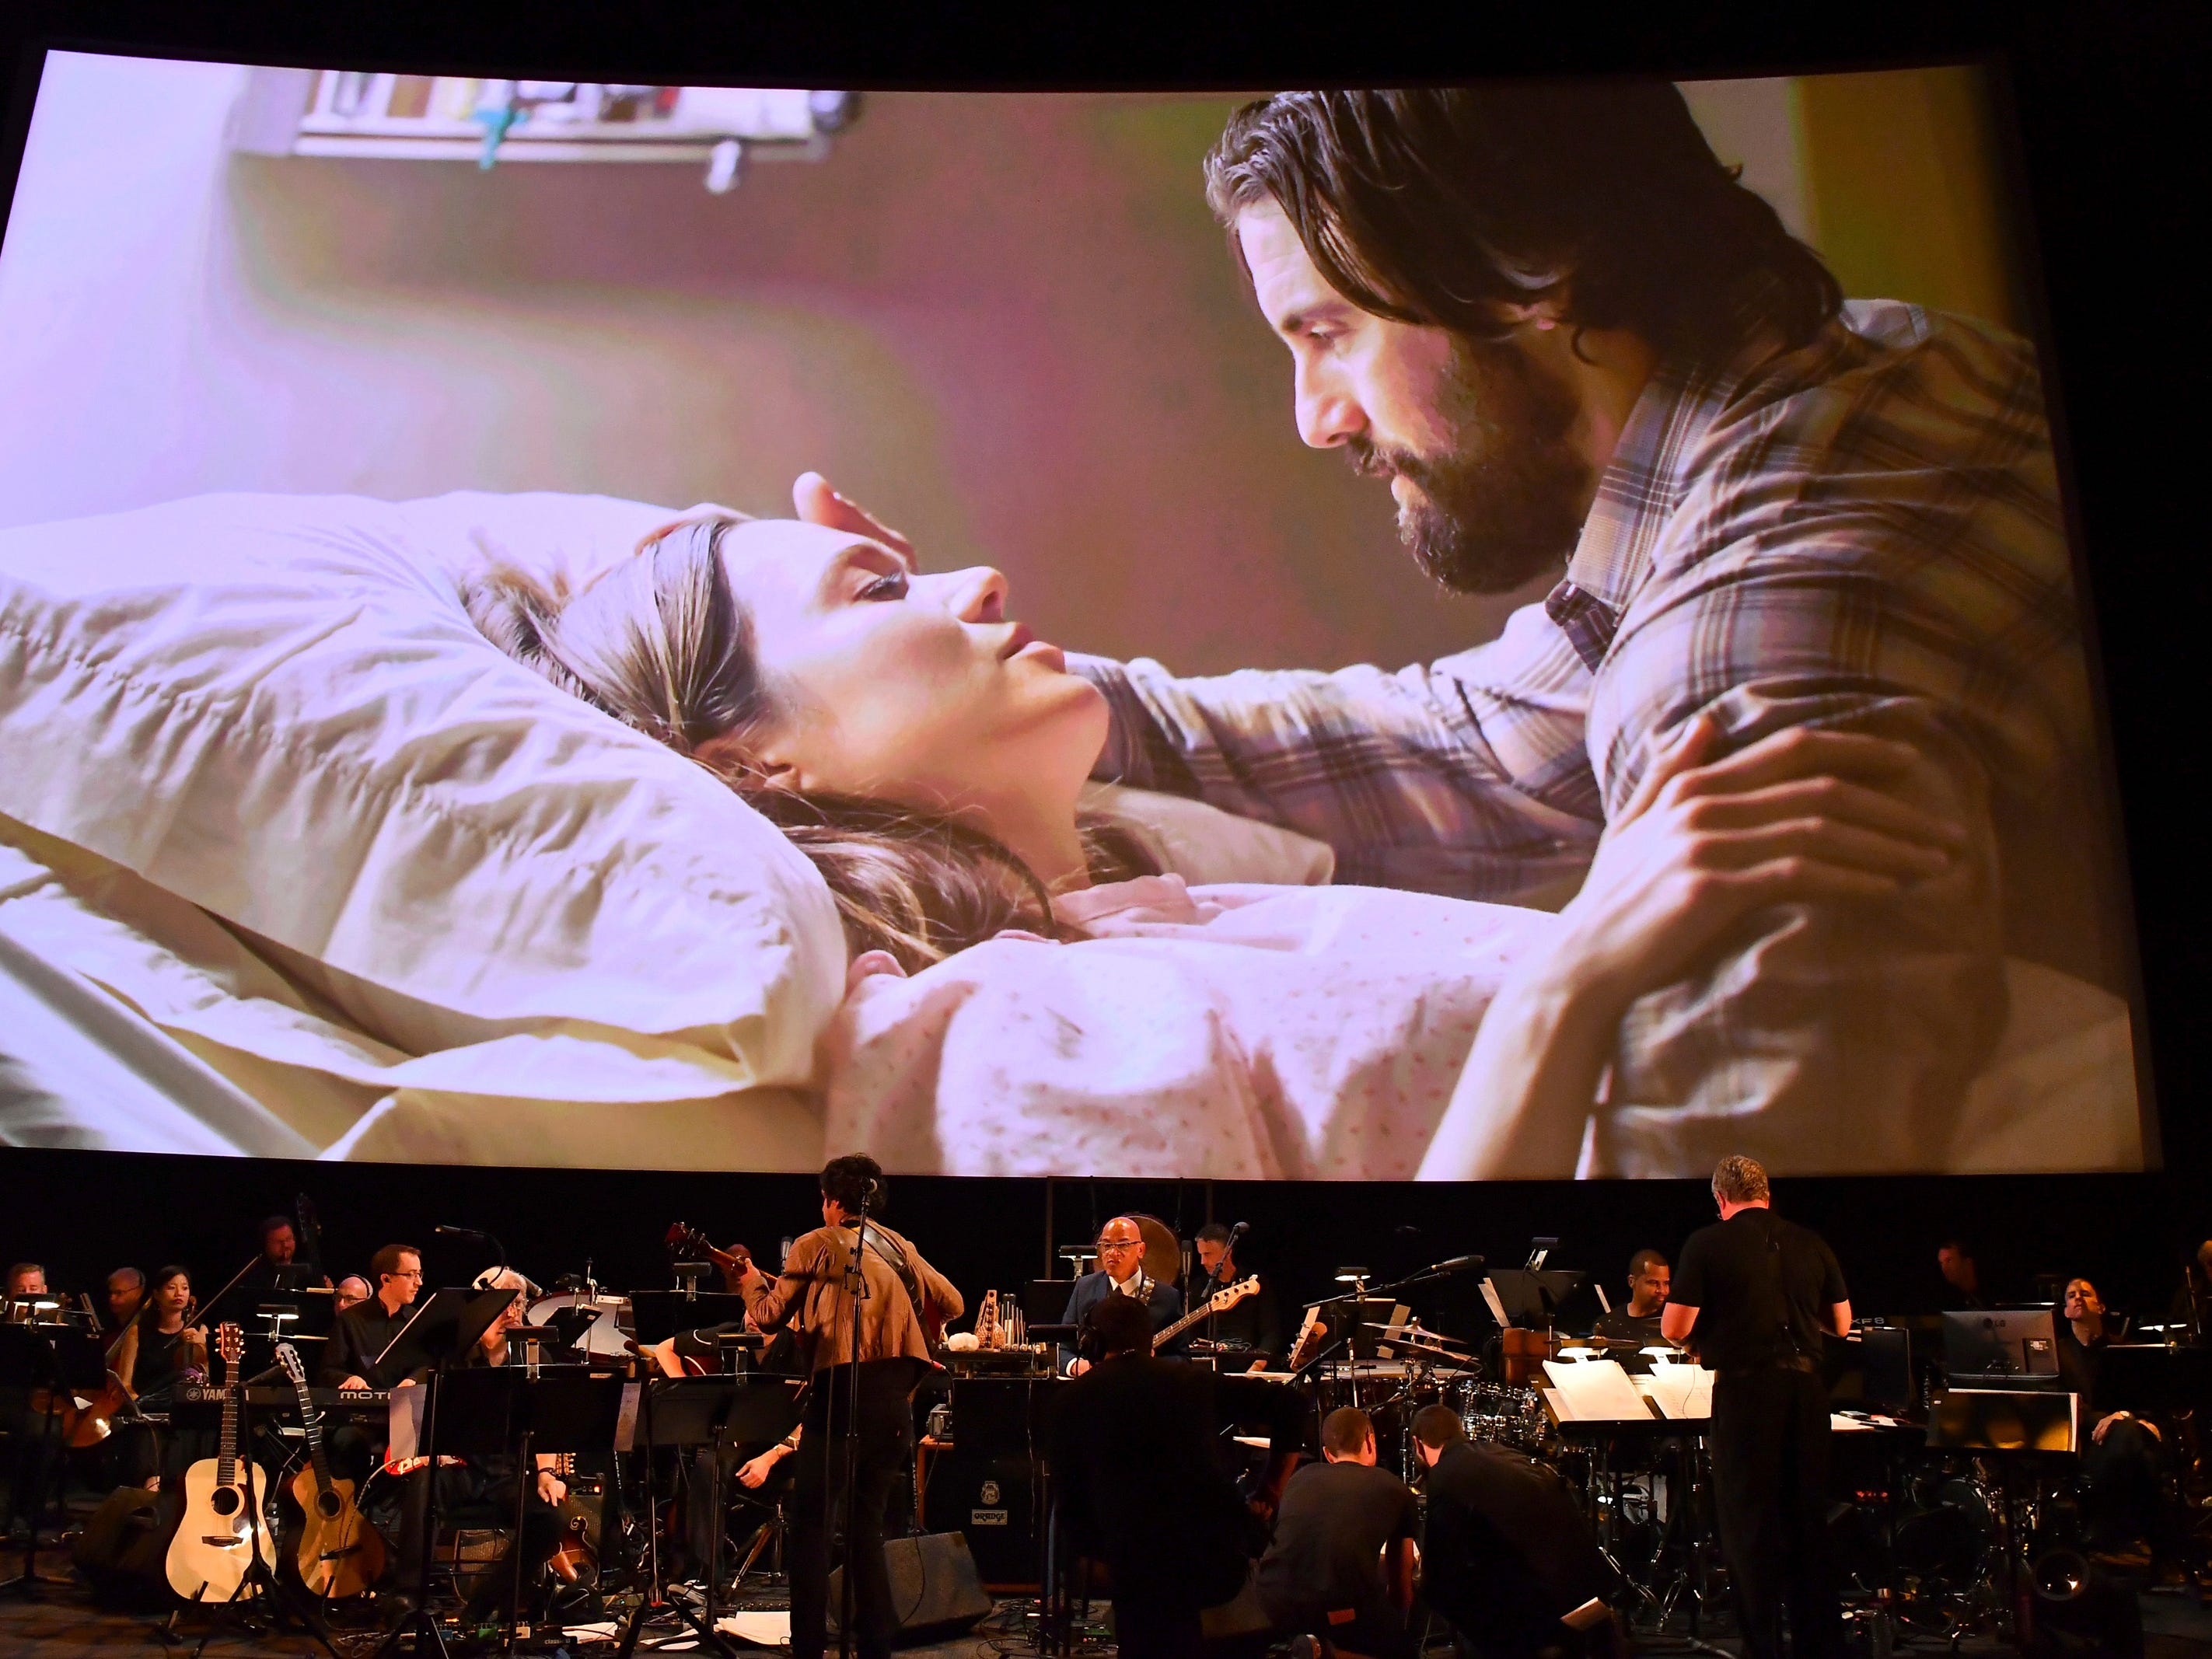 Conductor Mark Watters, right, and composer Siddhartha Khosla, center, perform the score from This Is Us during WORDS + MUSIC, presented Thursday, June 29, 2017 at the Television Academy's Wolf Theatre at the Saban Media Center in North Hollywood, Calif. Mandy Moore, left, and Milo Ventimiglia are pictured on screen. (Photo by Vince Bucci/Invision for the Television Academy/AP Images)